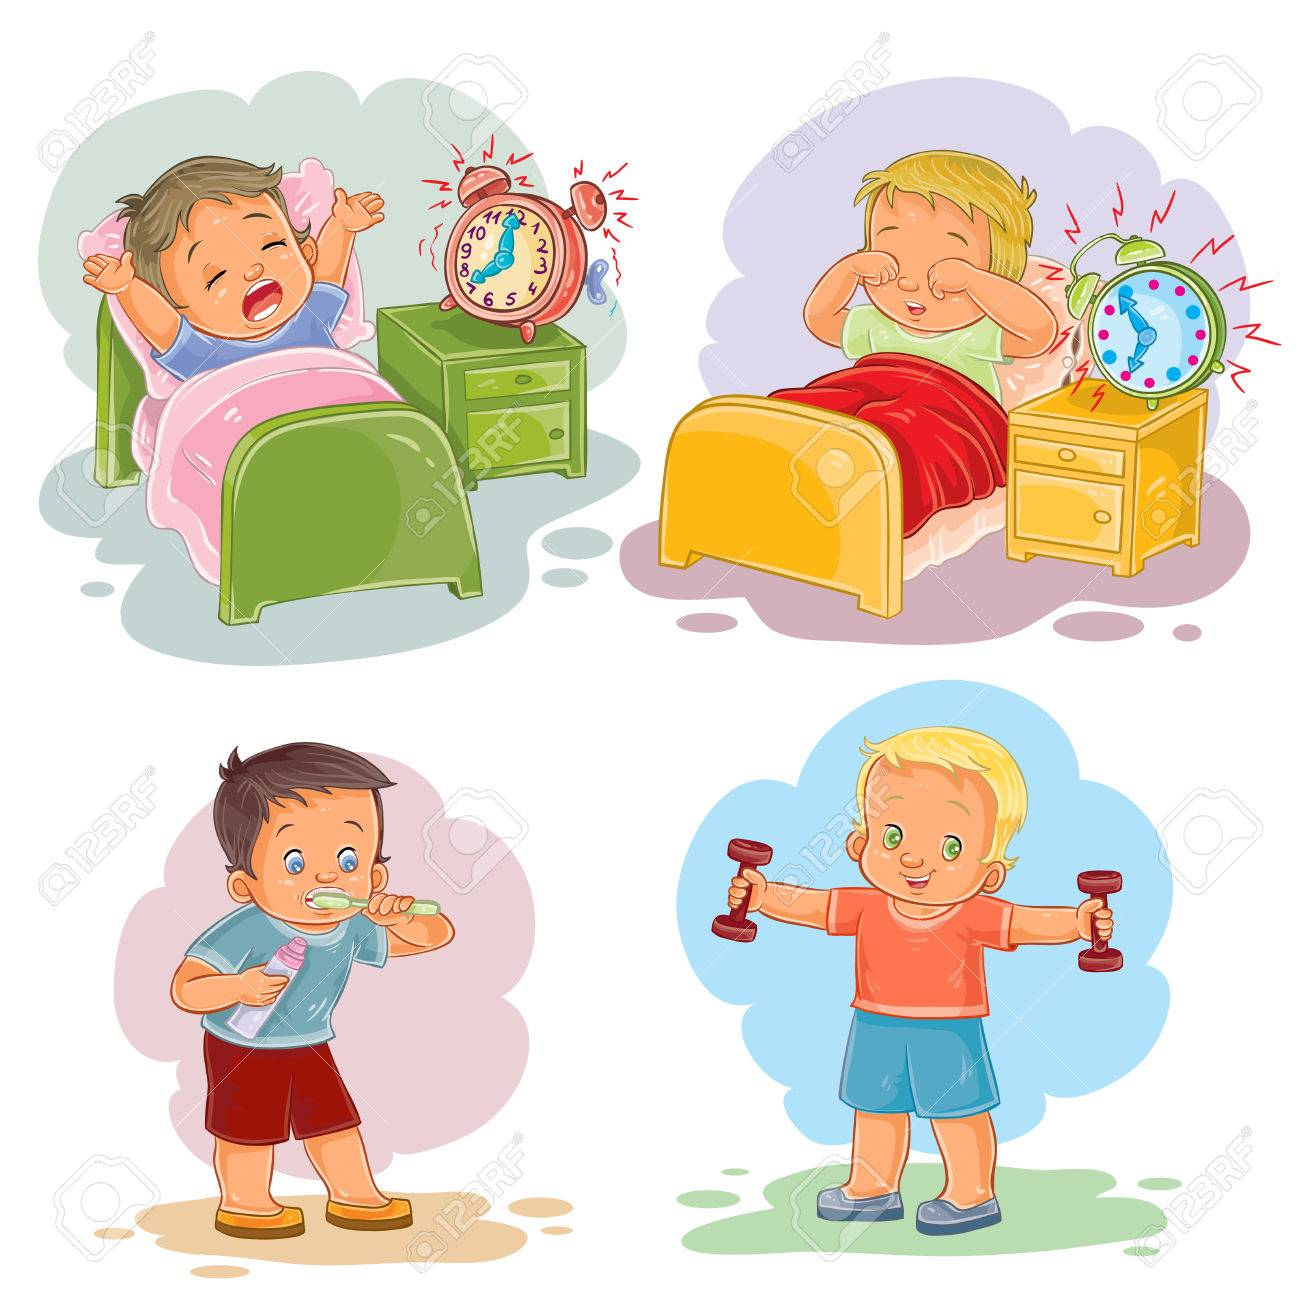 Clip Art Il Rations Of Little Children Wake Up In The Morning Stock Vector 70082176